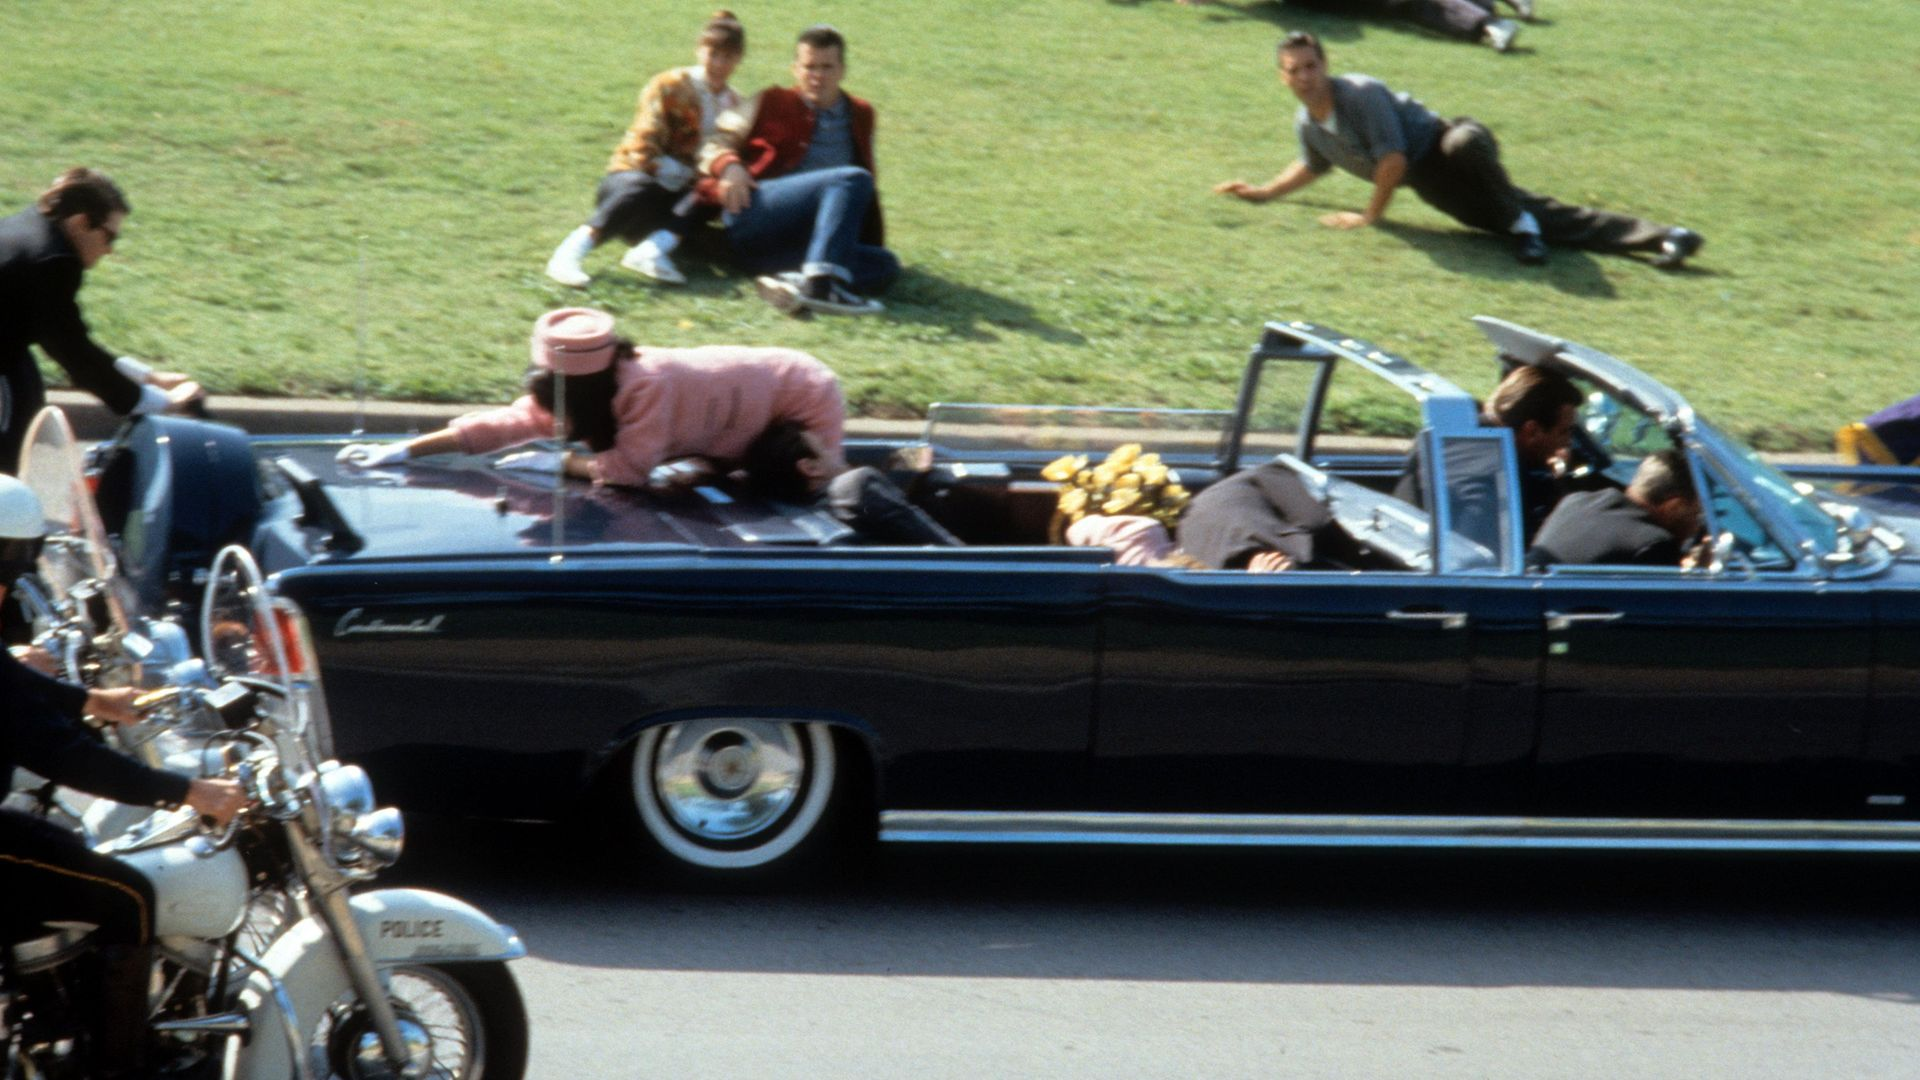 Jodie Farber reaches across the car in a scene from the film 'JFK', 1991. (Photo by Warner Brothers/Getty Images) - Credit: Getty Images